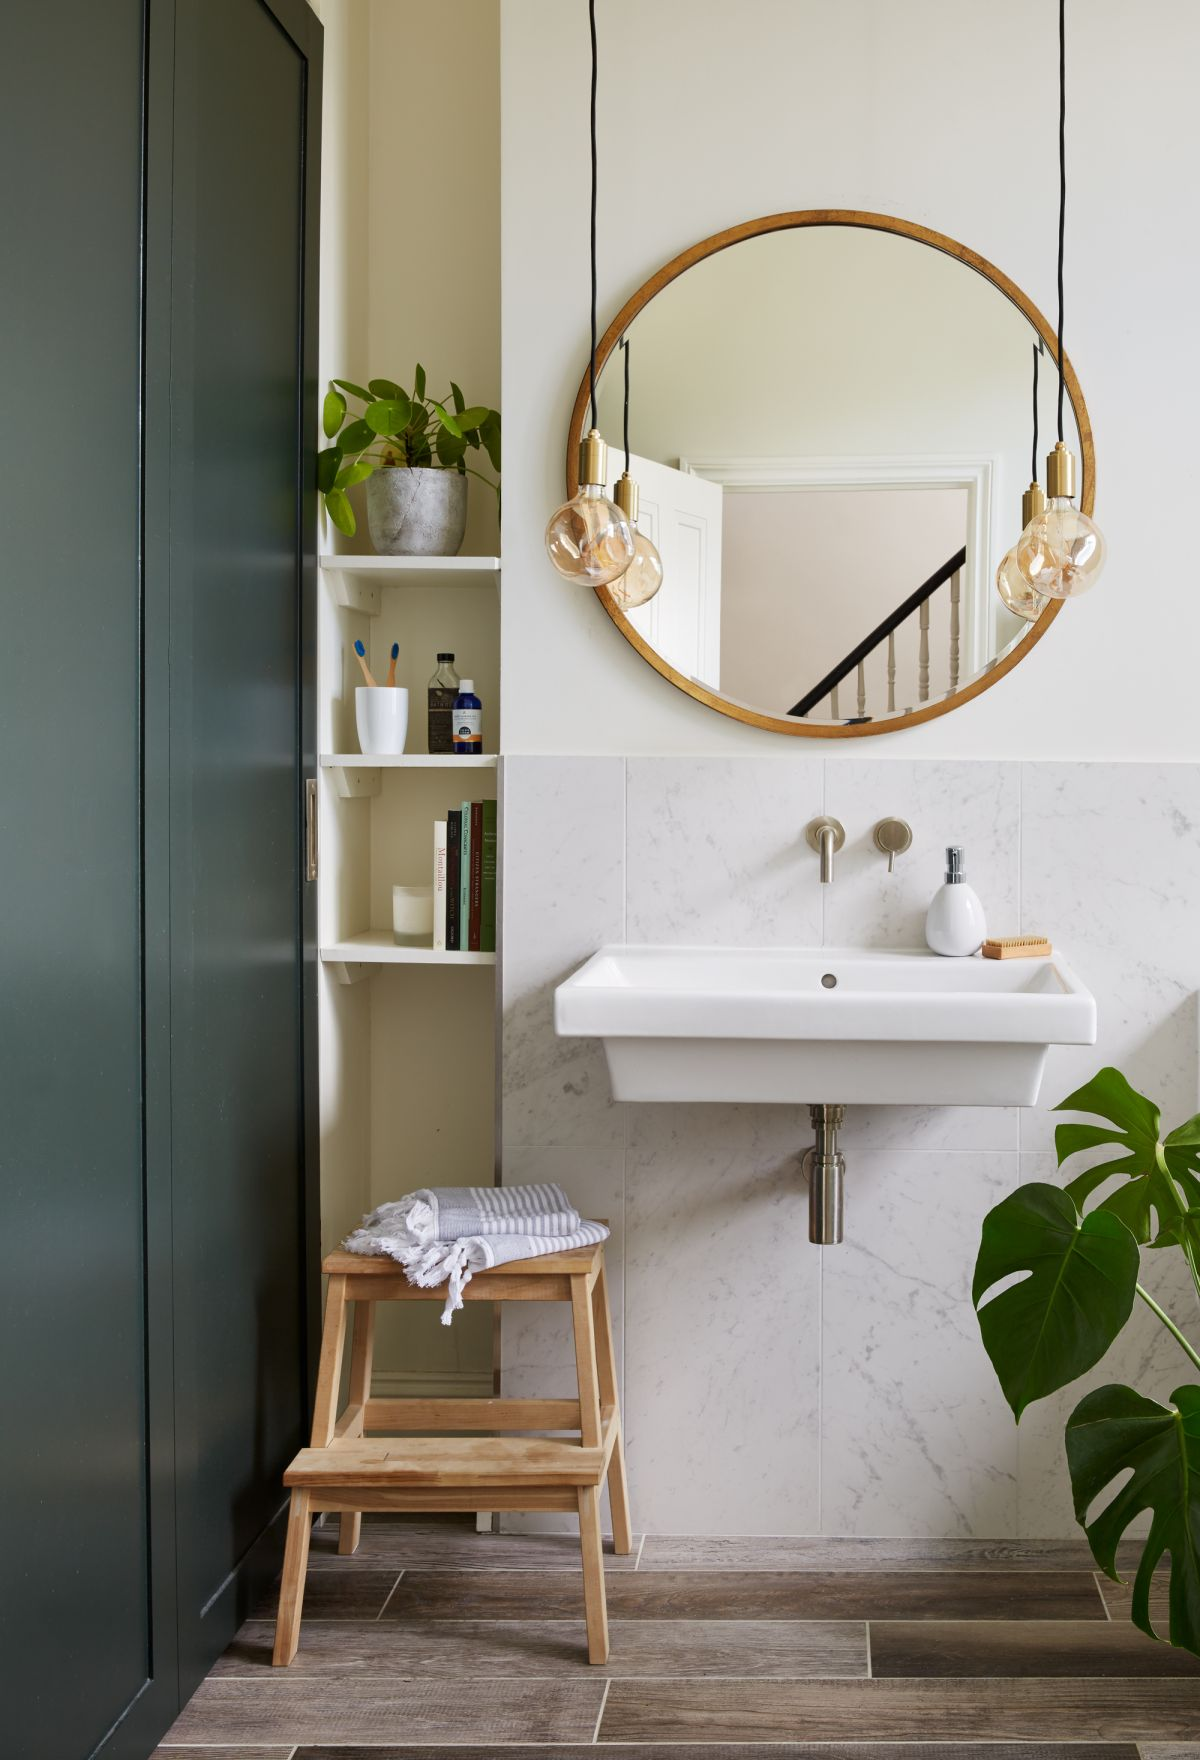 Small bathroom ideas: 18 clever ways to make the most of ...